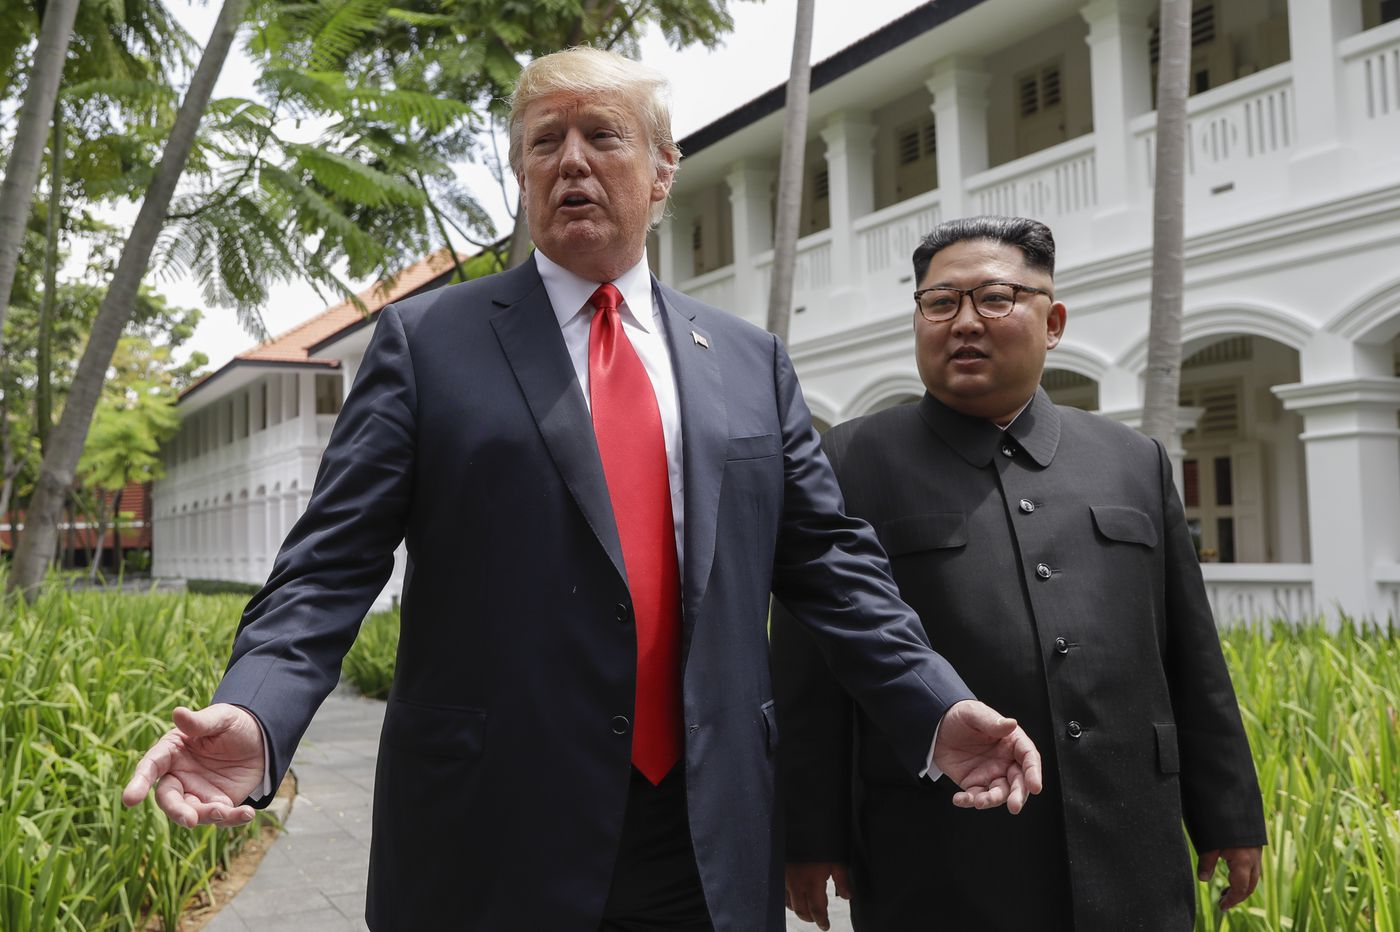 Donald Trump and Kim Jong Un heap praise on each other before summit